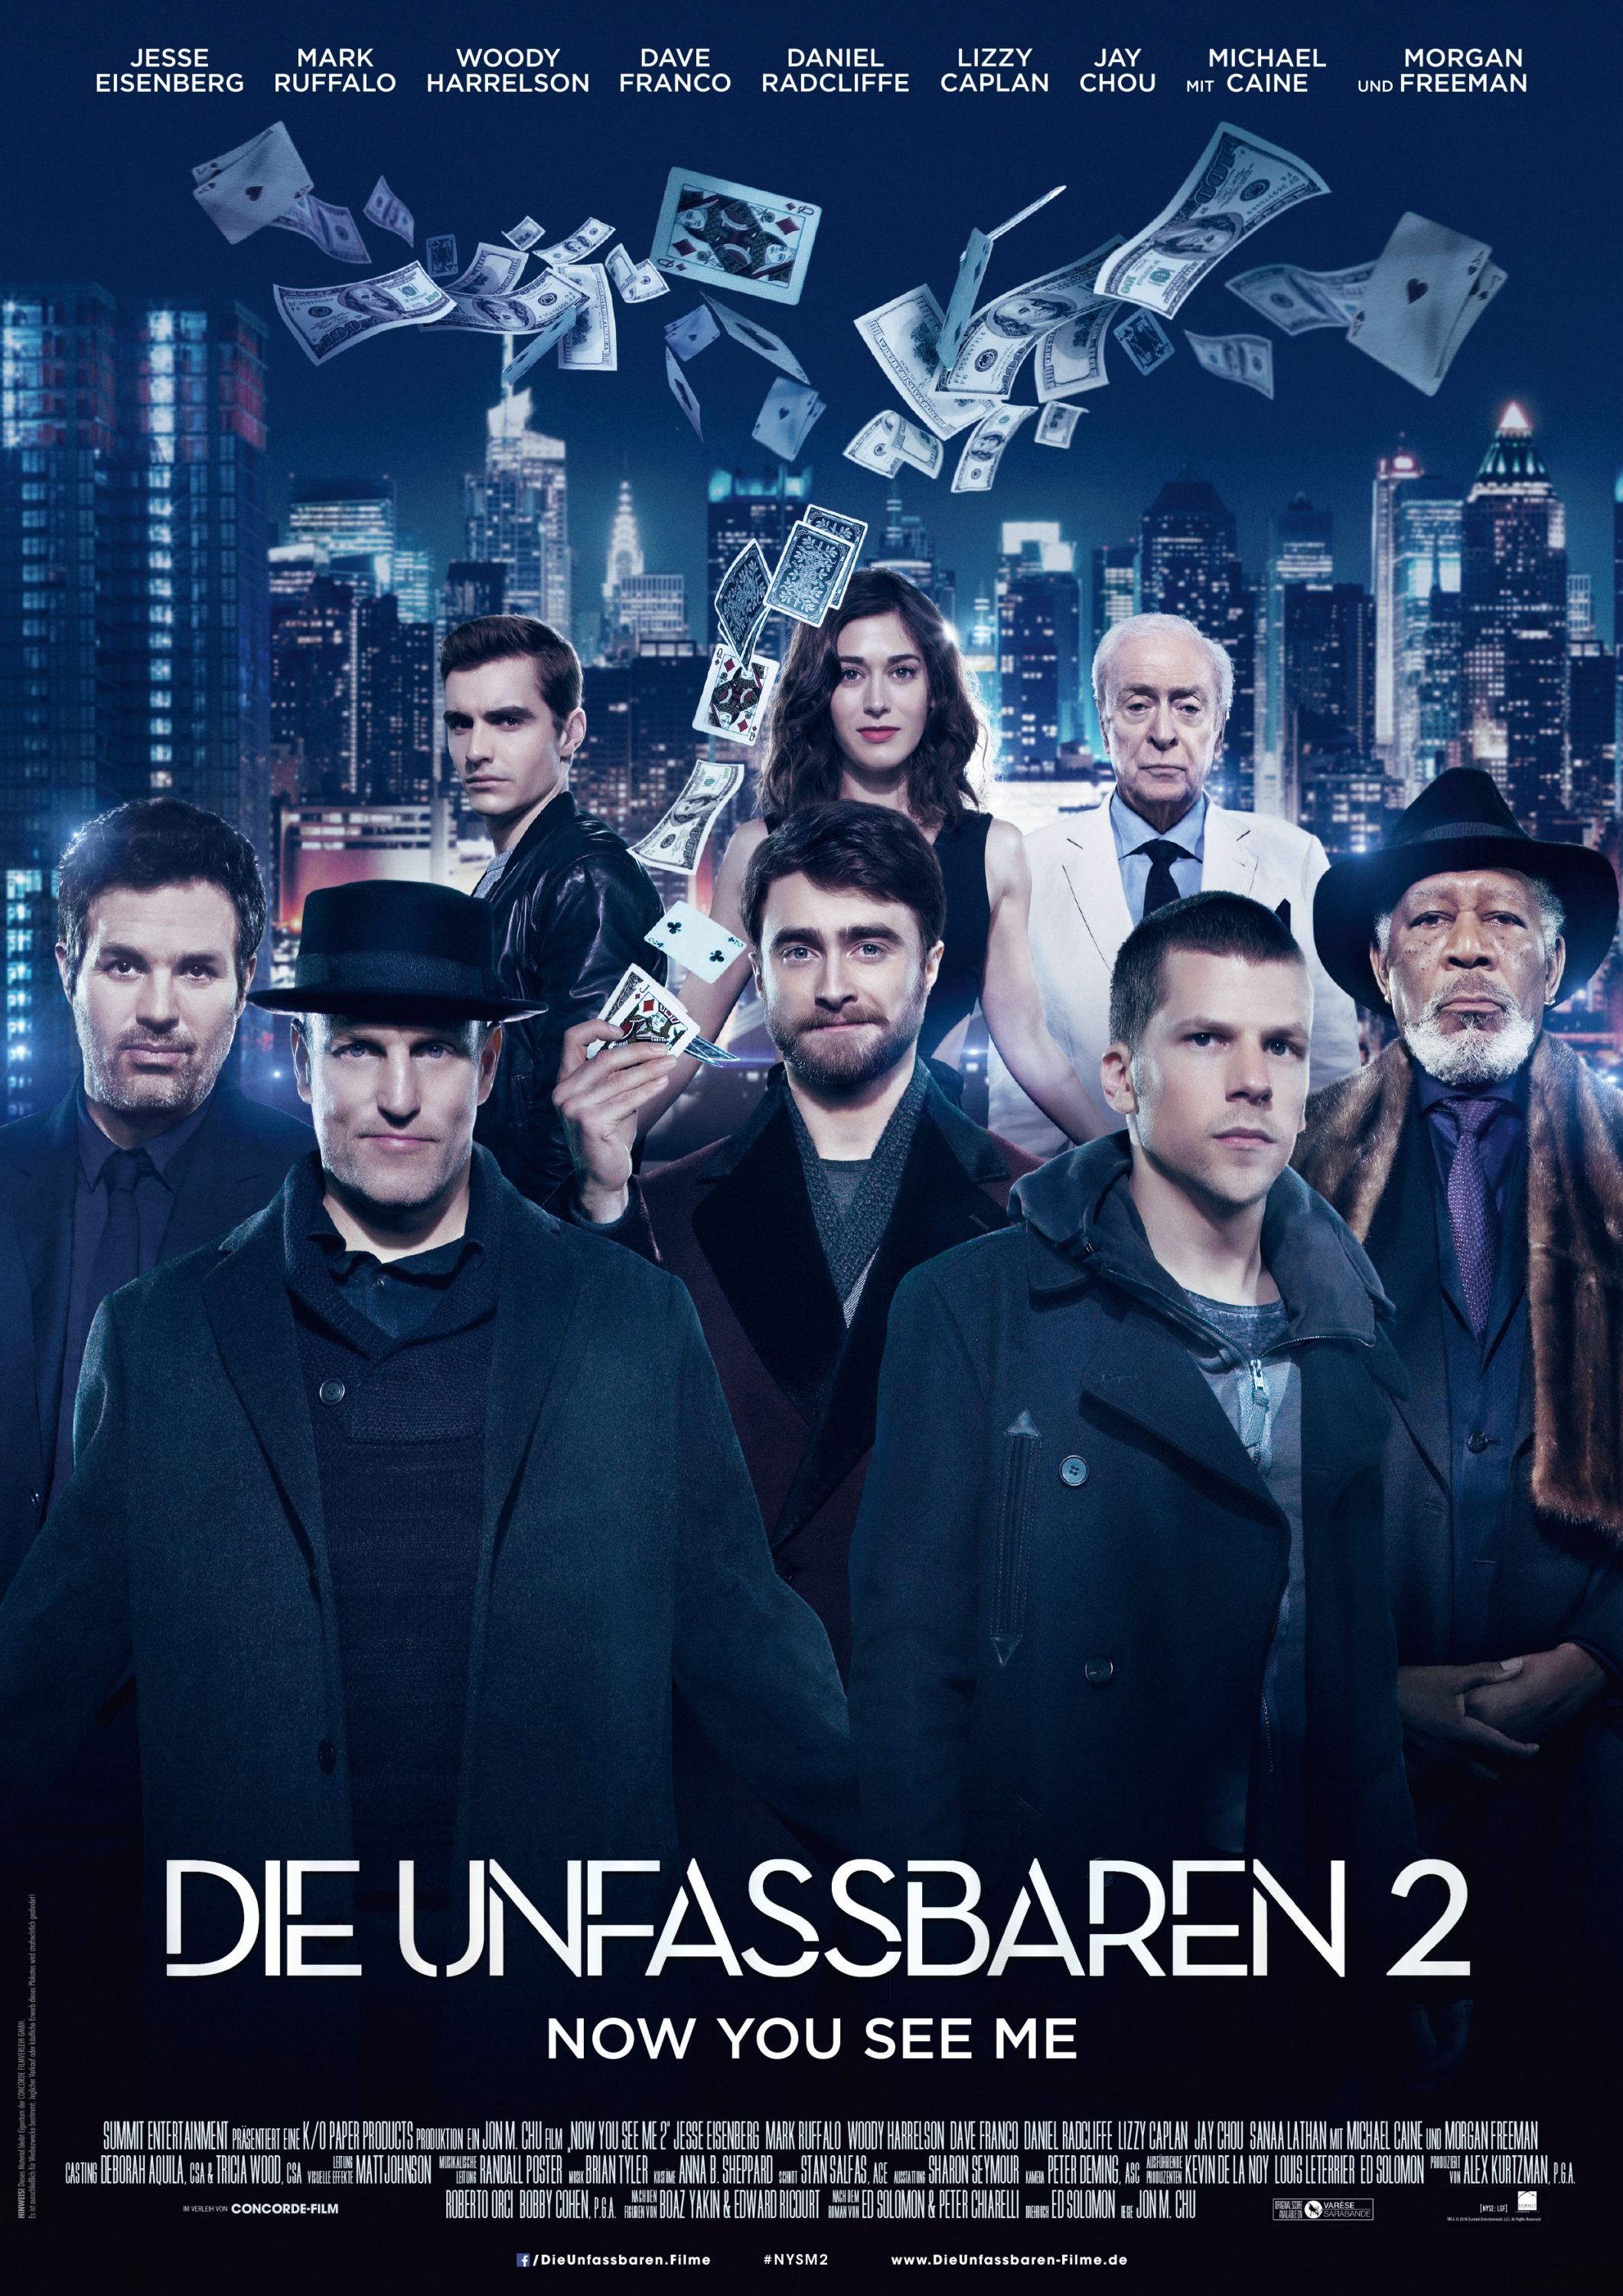 Phi Vụ Thế Kỷ 2 - Now You See Me 2 (2016)